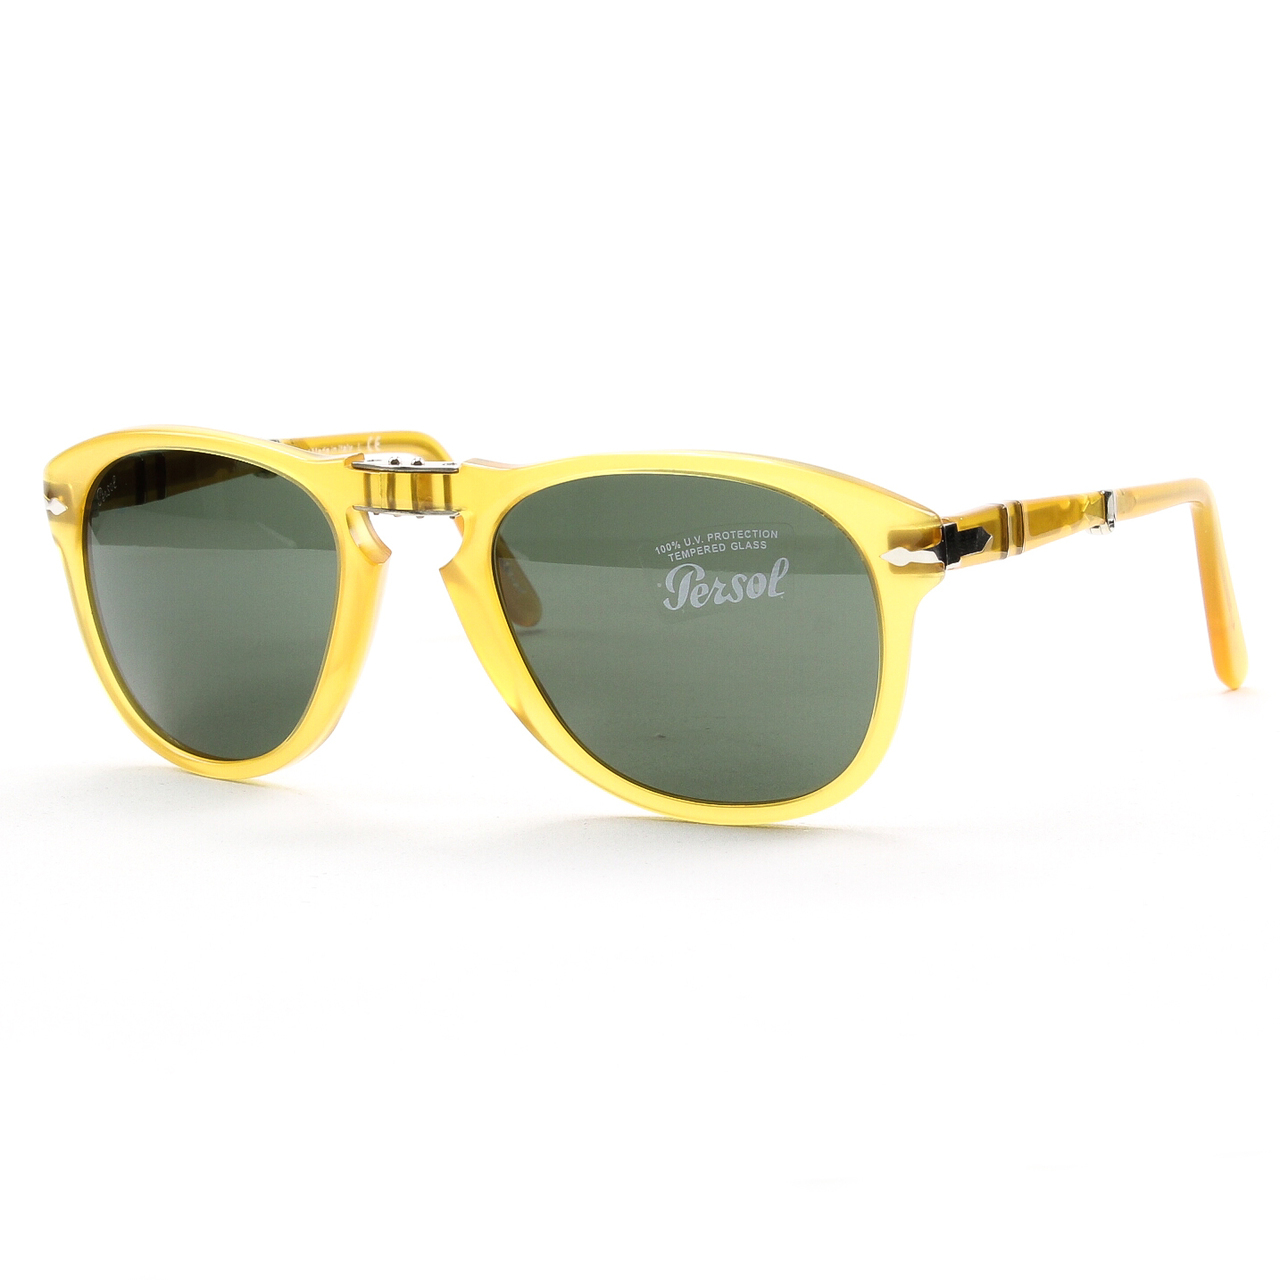 Persol 714 Folding Sunglasses 204/31 Transparent Honey, Crystal Lens PO0714 54mm